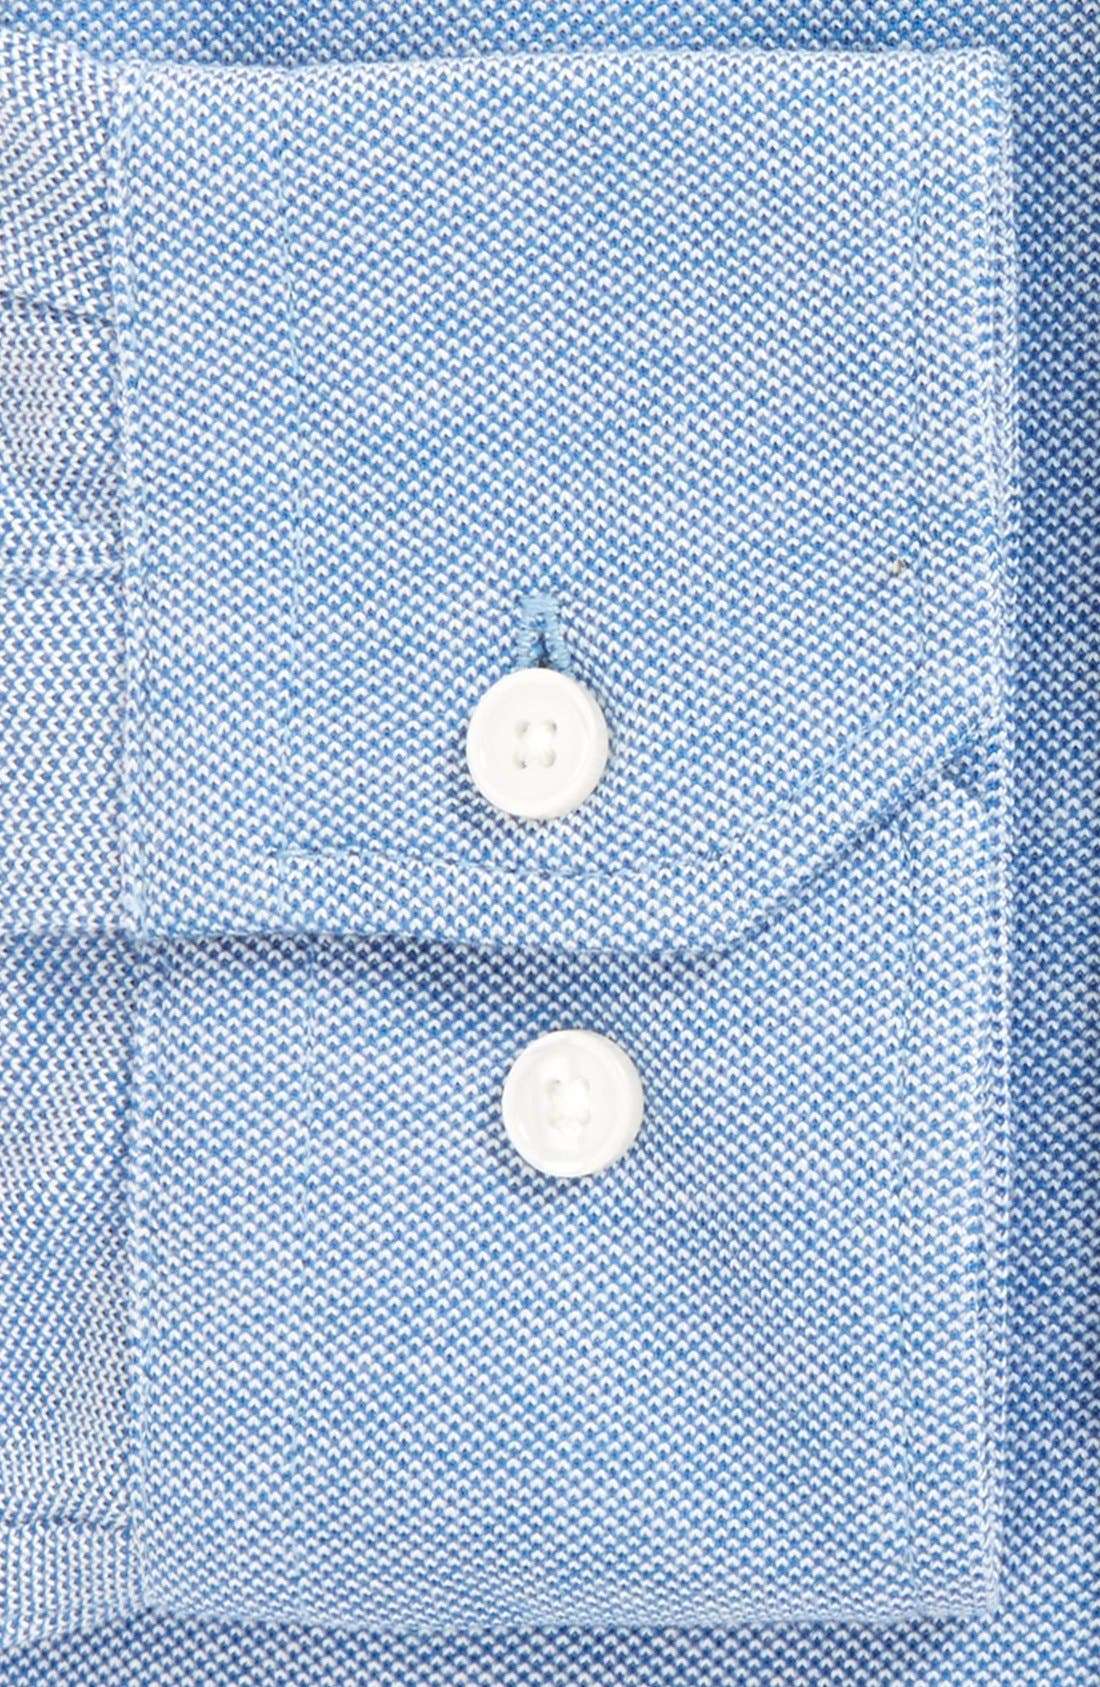 Trim Fit Knit Dress Shirt,                             Alternate thumbnail 3, color,                             Blue Provence